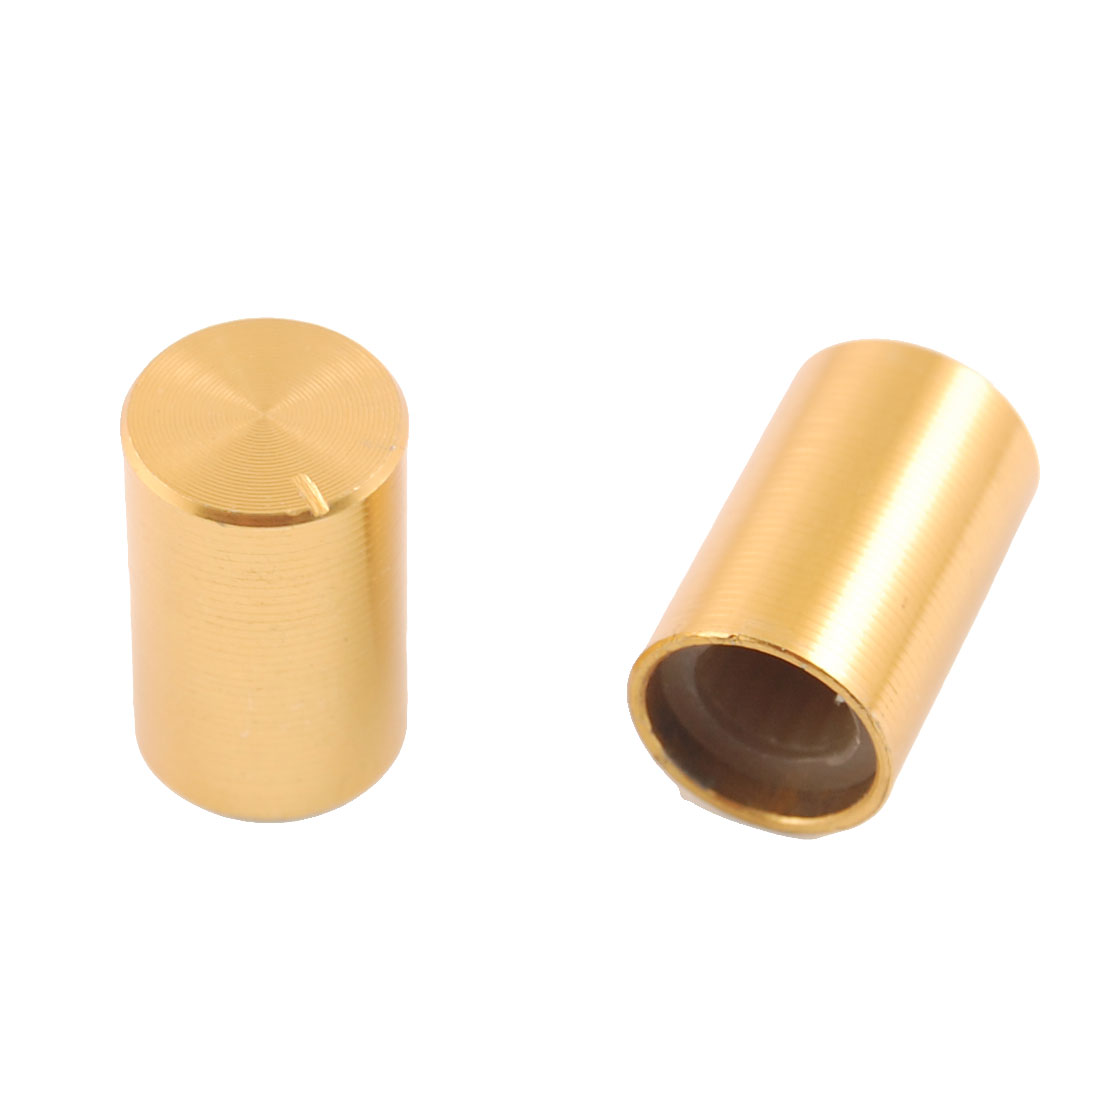 5-Pcs-10mm-x-15mm-Aluminum-Rotary-Knobs-Gold-Tone-for-Potentiometer